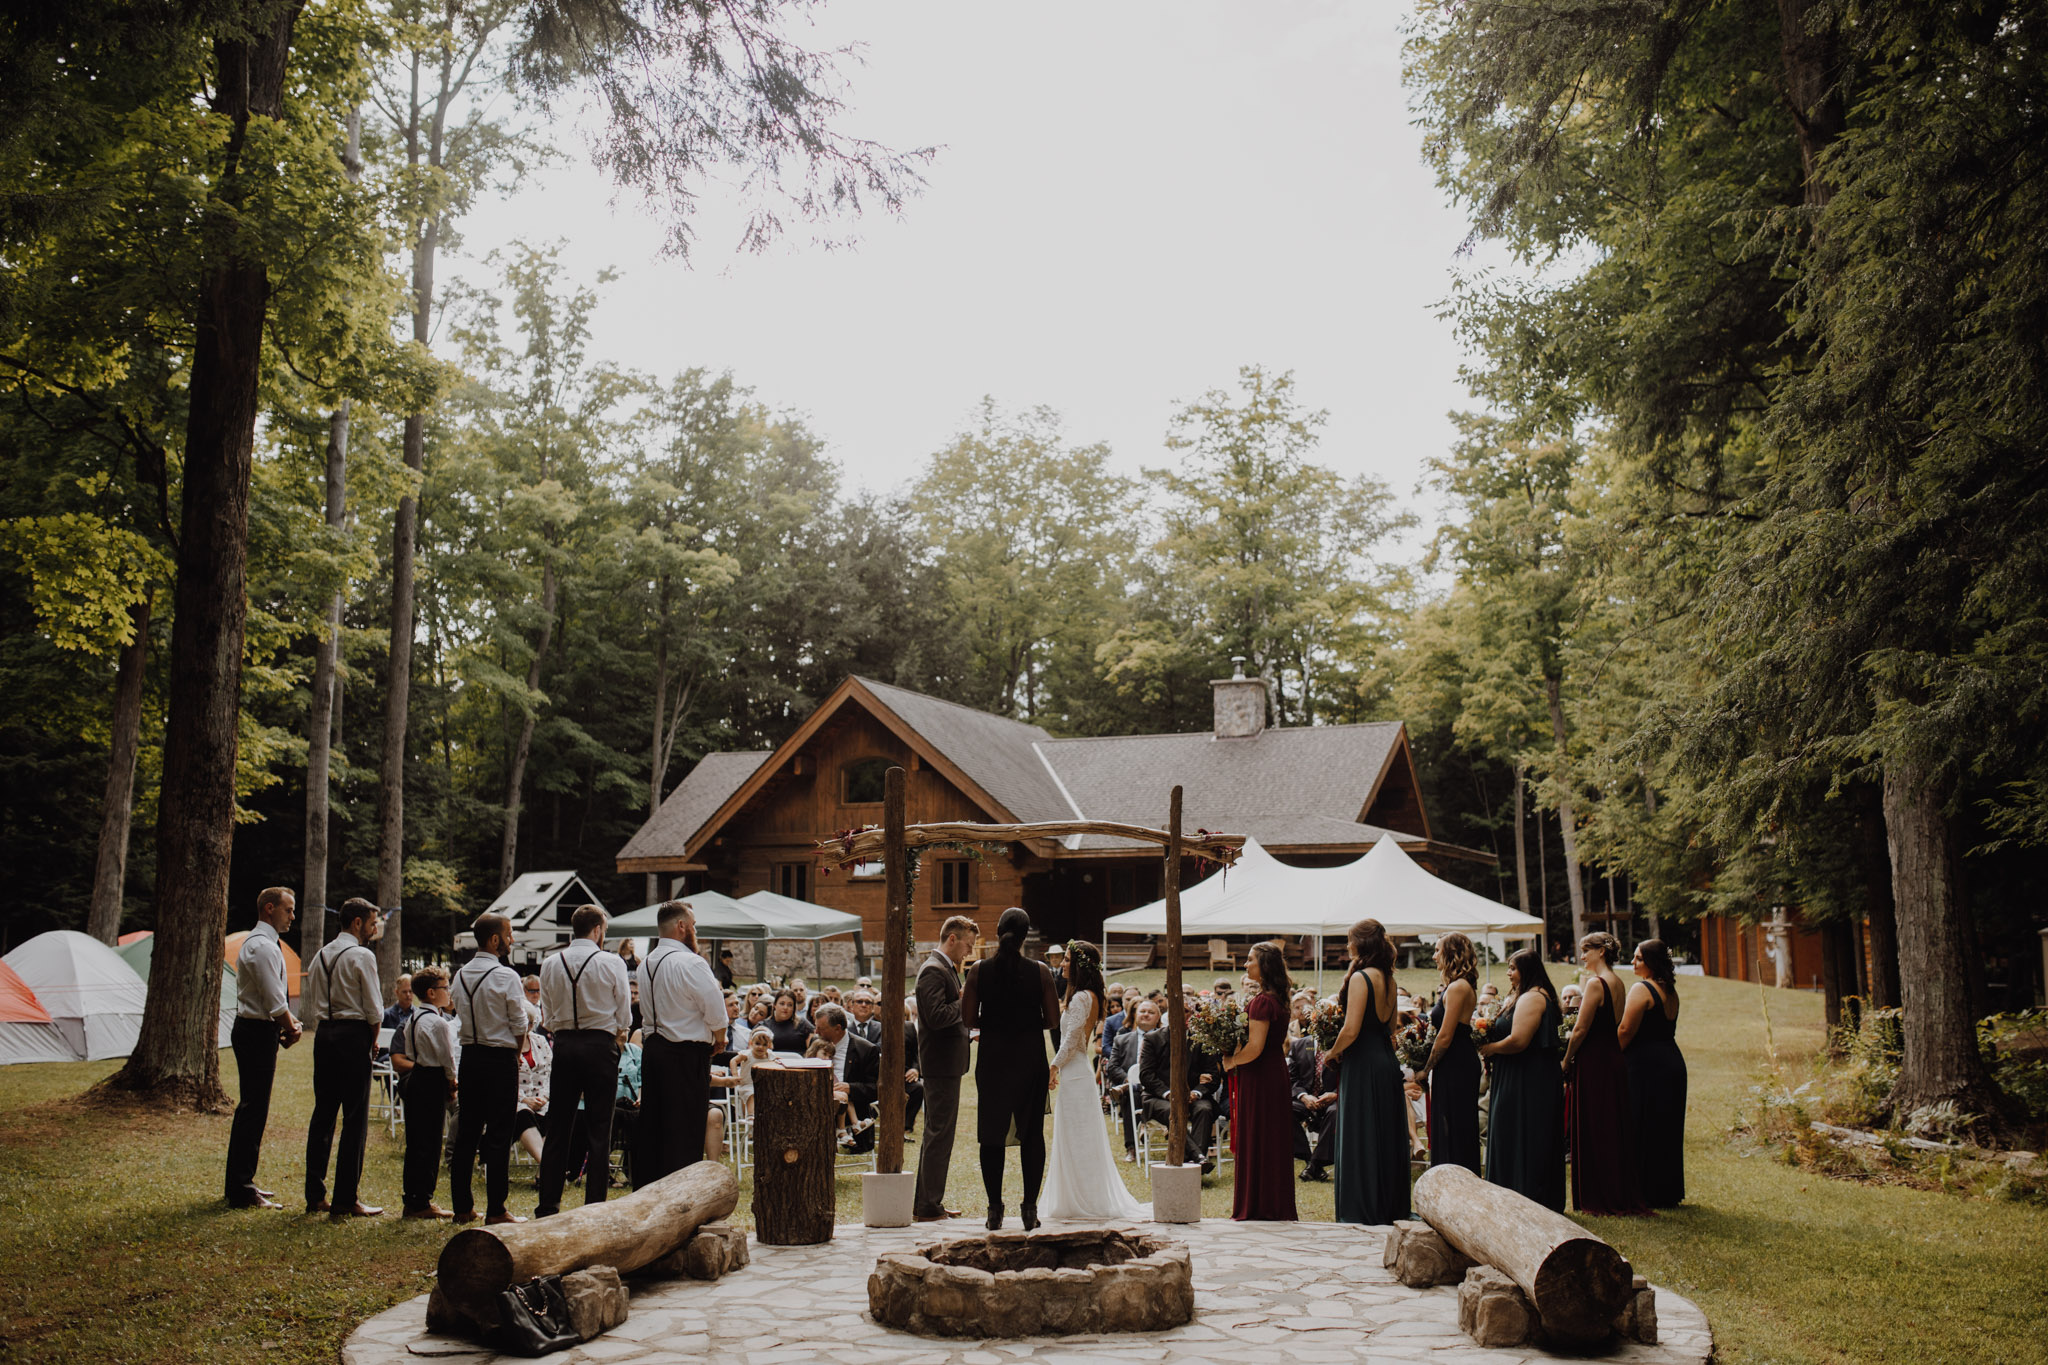 Outdoor Camp Wedding - ceremony in the clearing